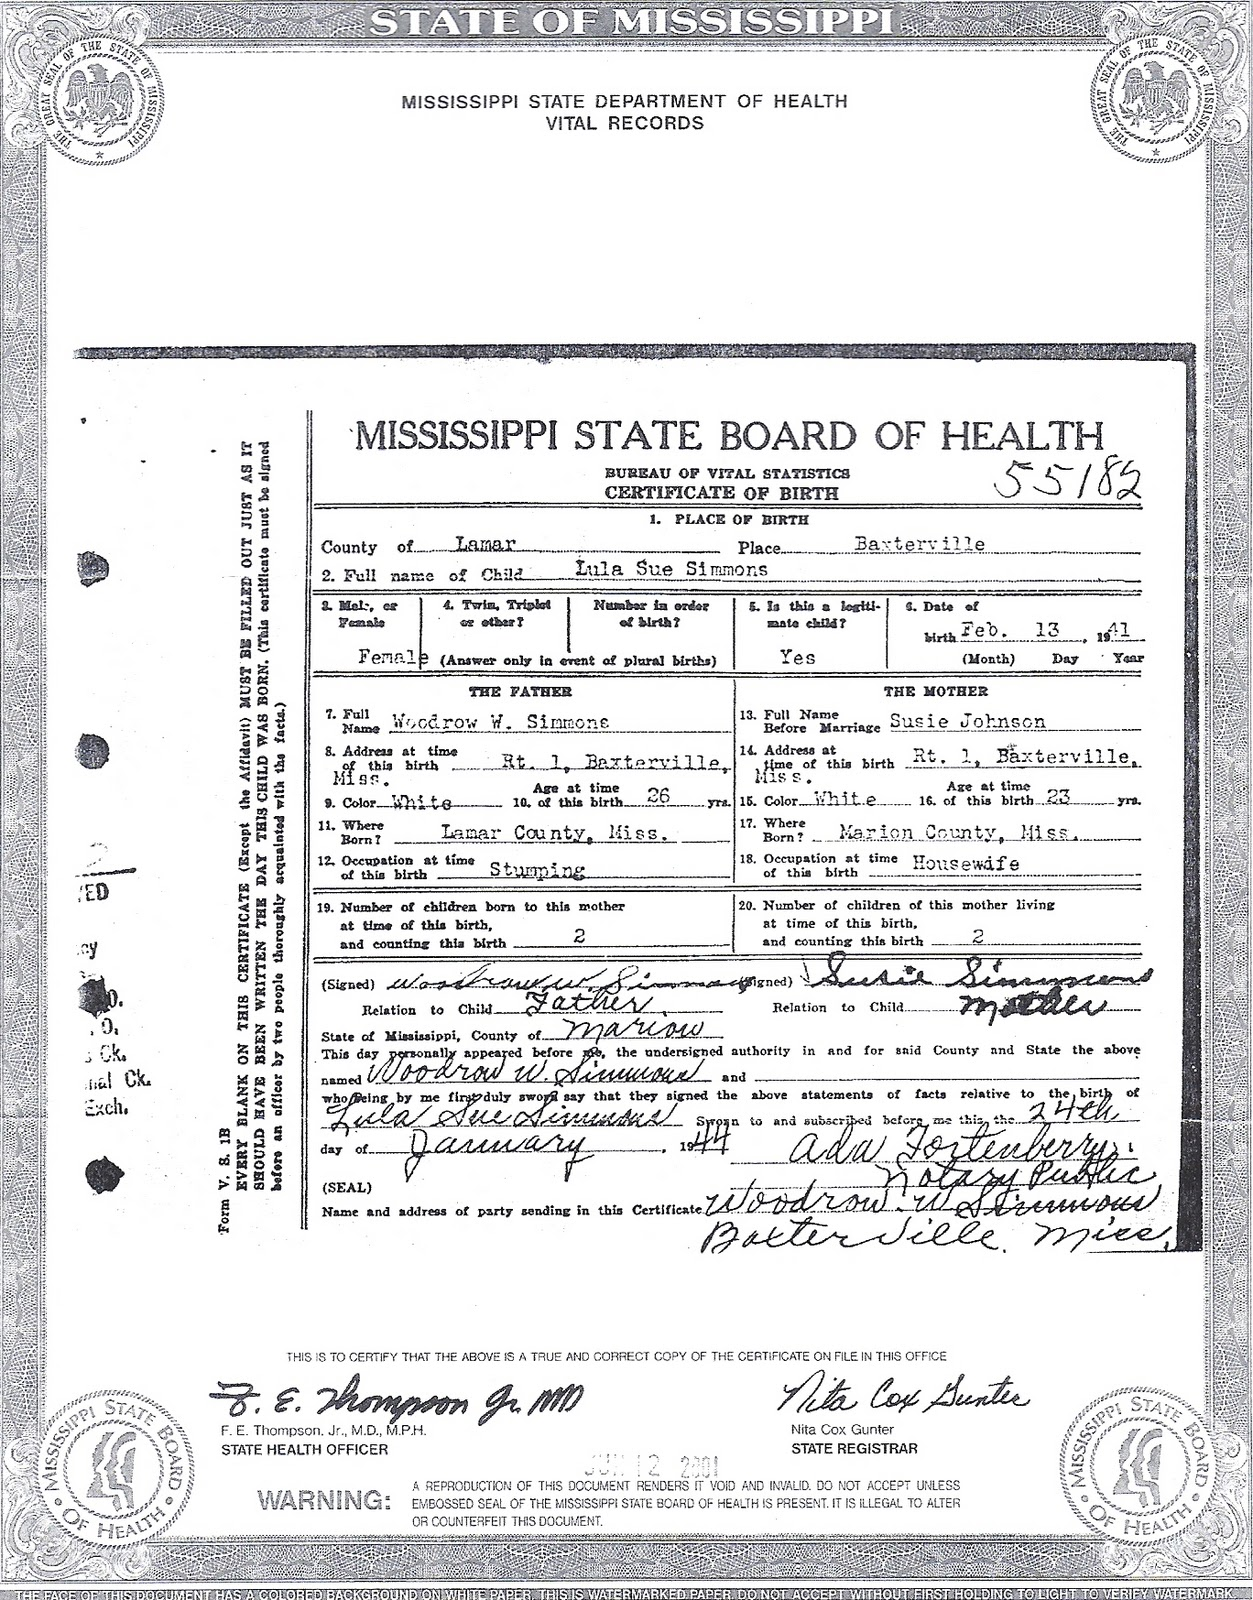 The family snoop lula sue simmons lula sue simmons birth certificate xflitez Gallery